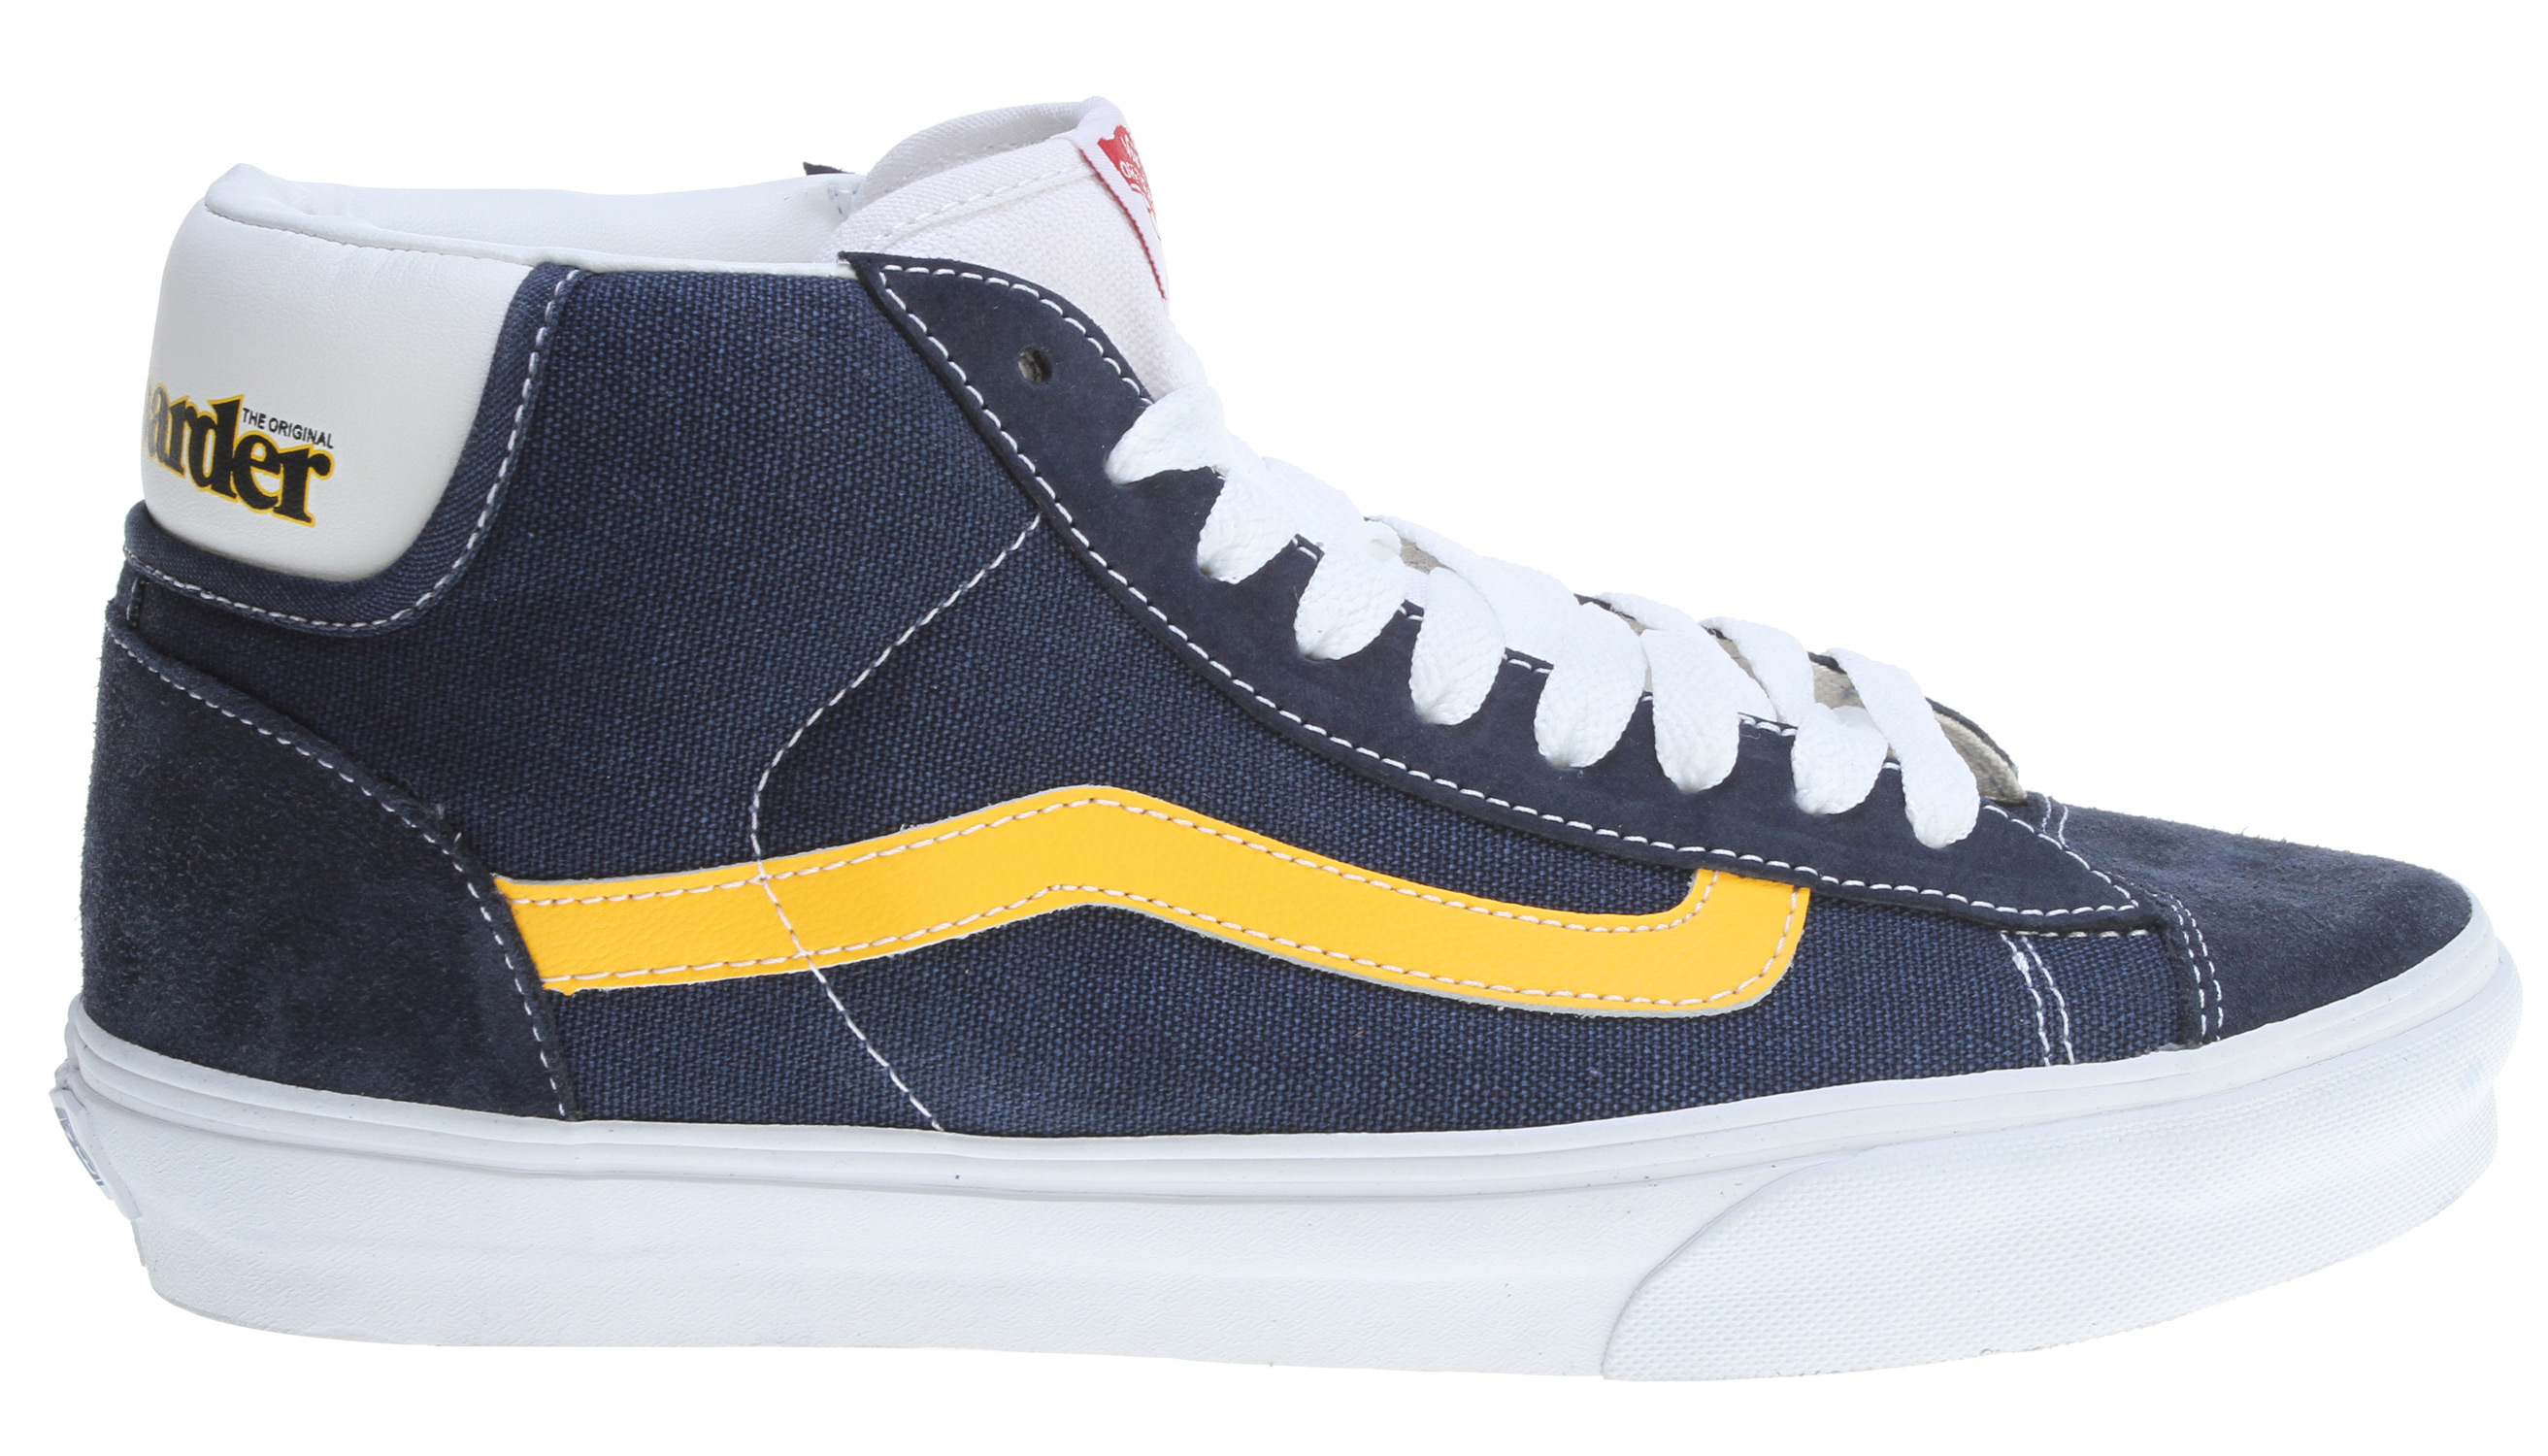 Skateboard Key Features of the Vans Mid Skool '77 Shoes: Combination leather and synthetic uppers Padded tongue and collar Vulcanized sole attachment Traditional gum outsole with waffle pattern Imported - $45.95